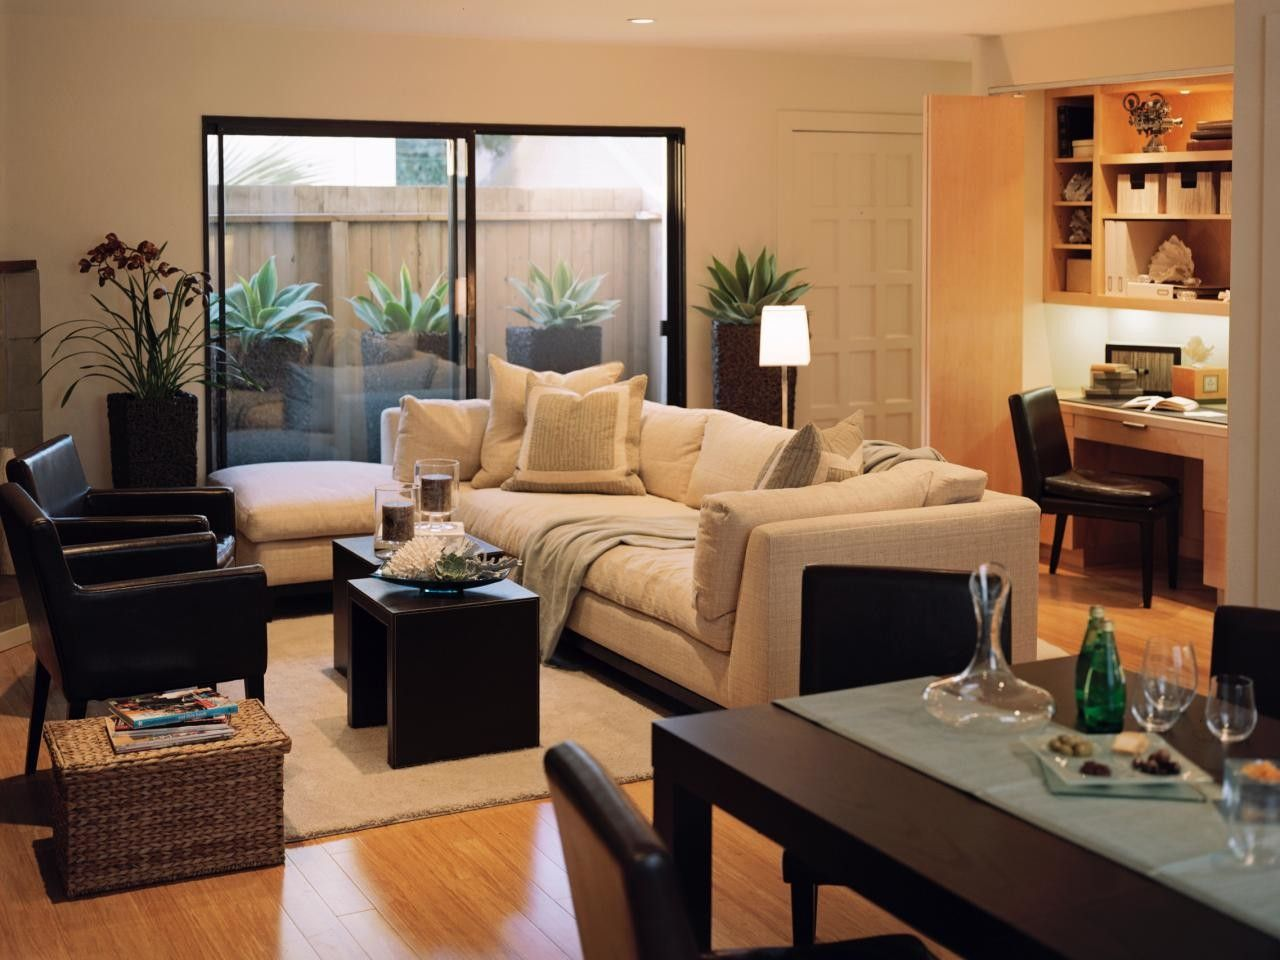 Excellent Photo Of Townhouse Decorating Ideas Modern Small